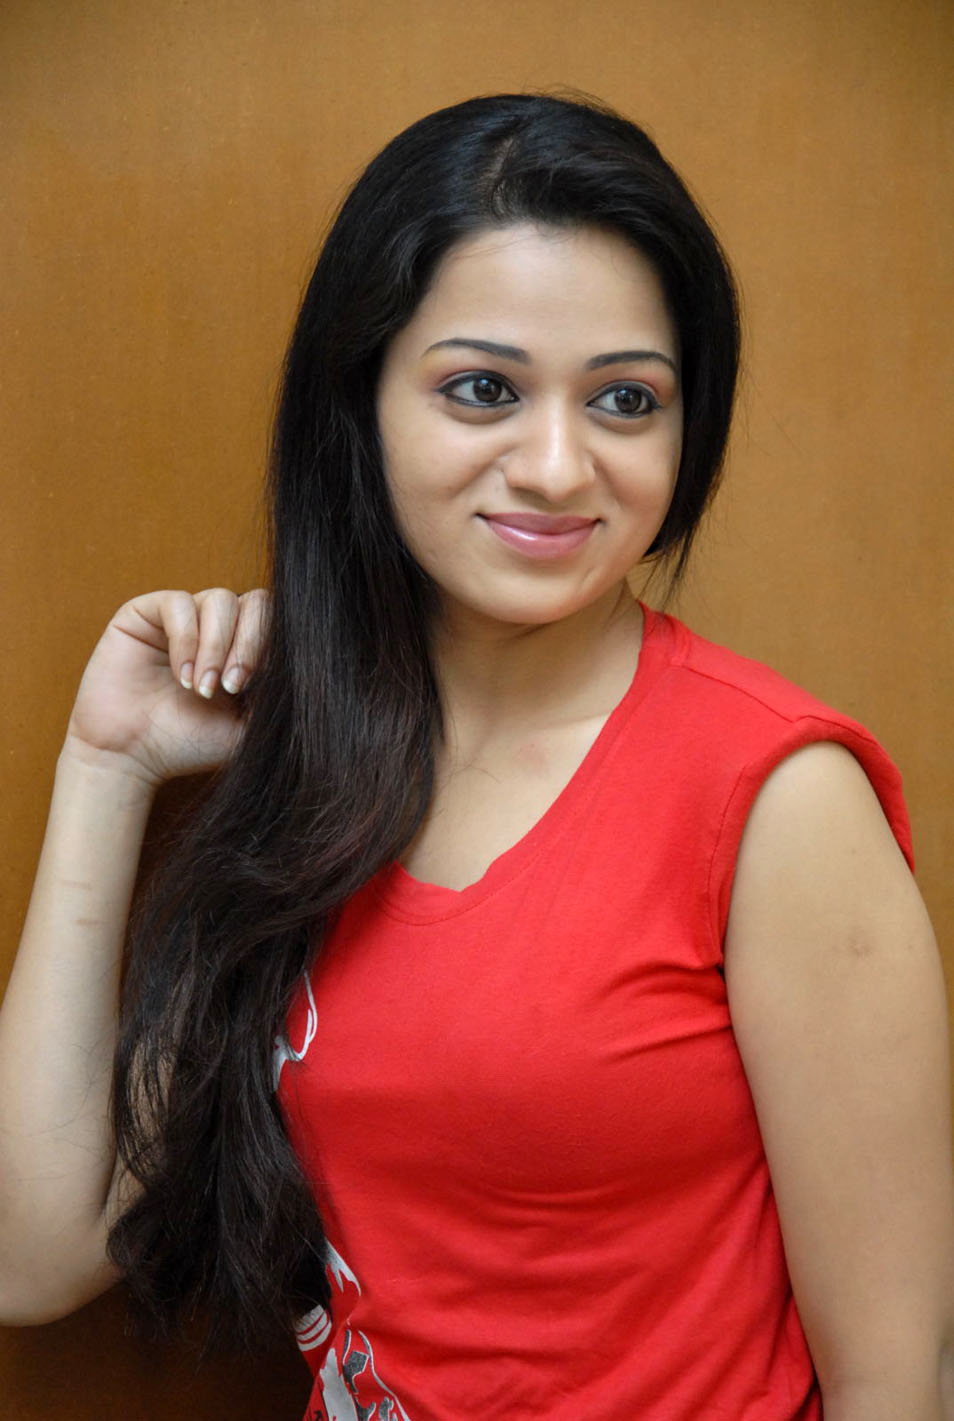 reshma malayalam movie actress gallery image